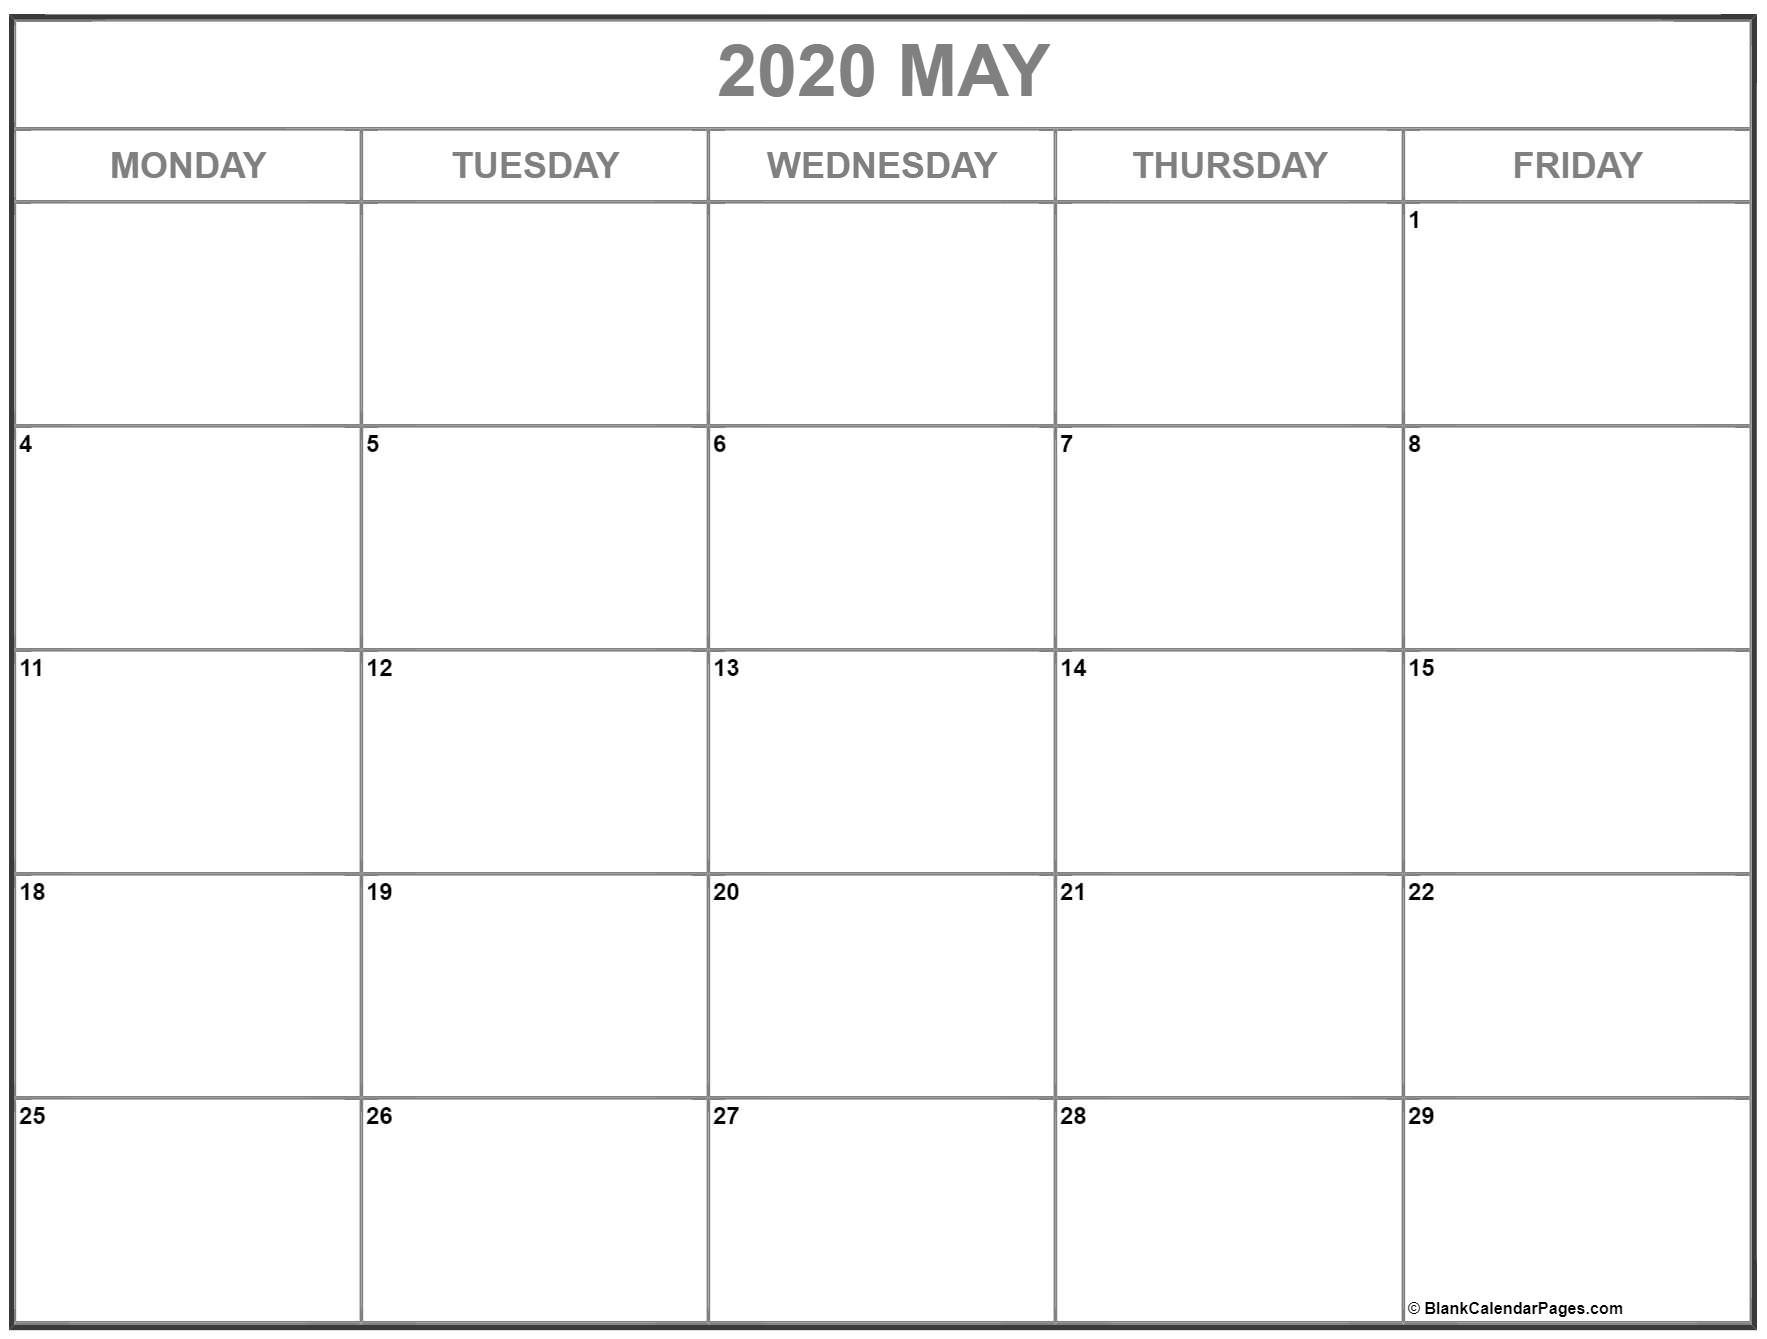 May 2020 Monday Calendar | Monday To Sunday Free Printable Monday To Friday Calendars